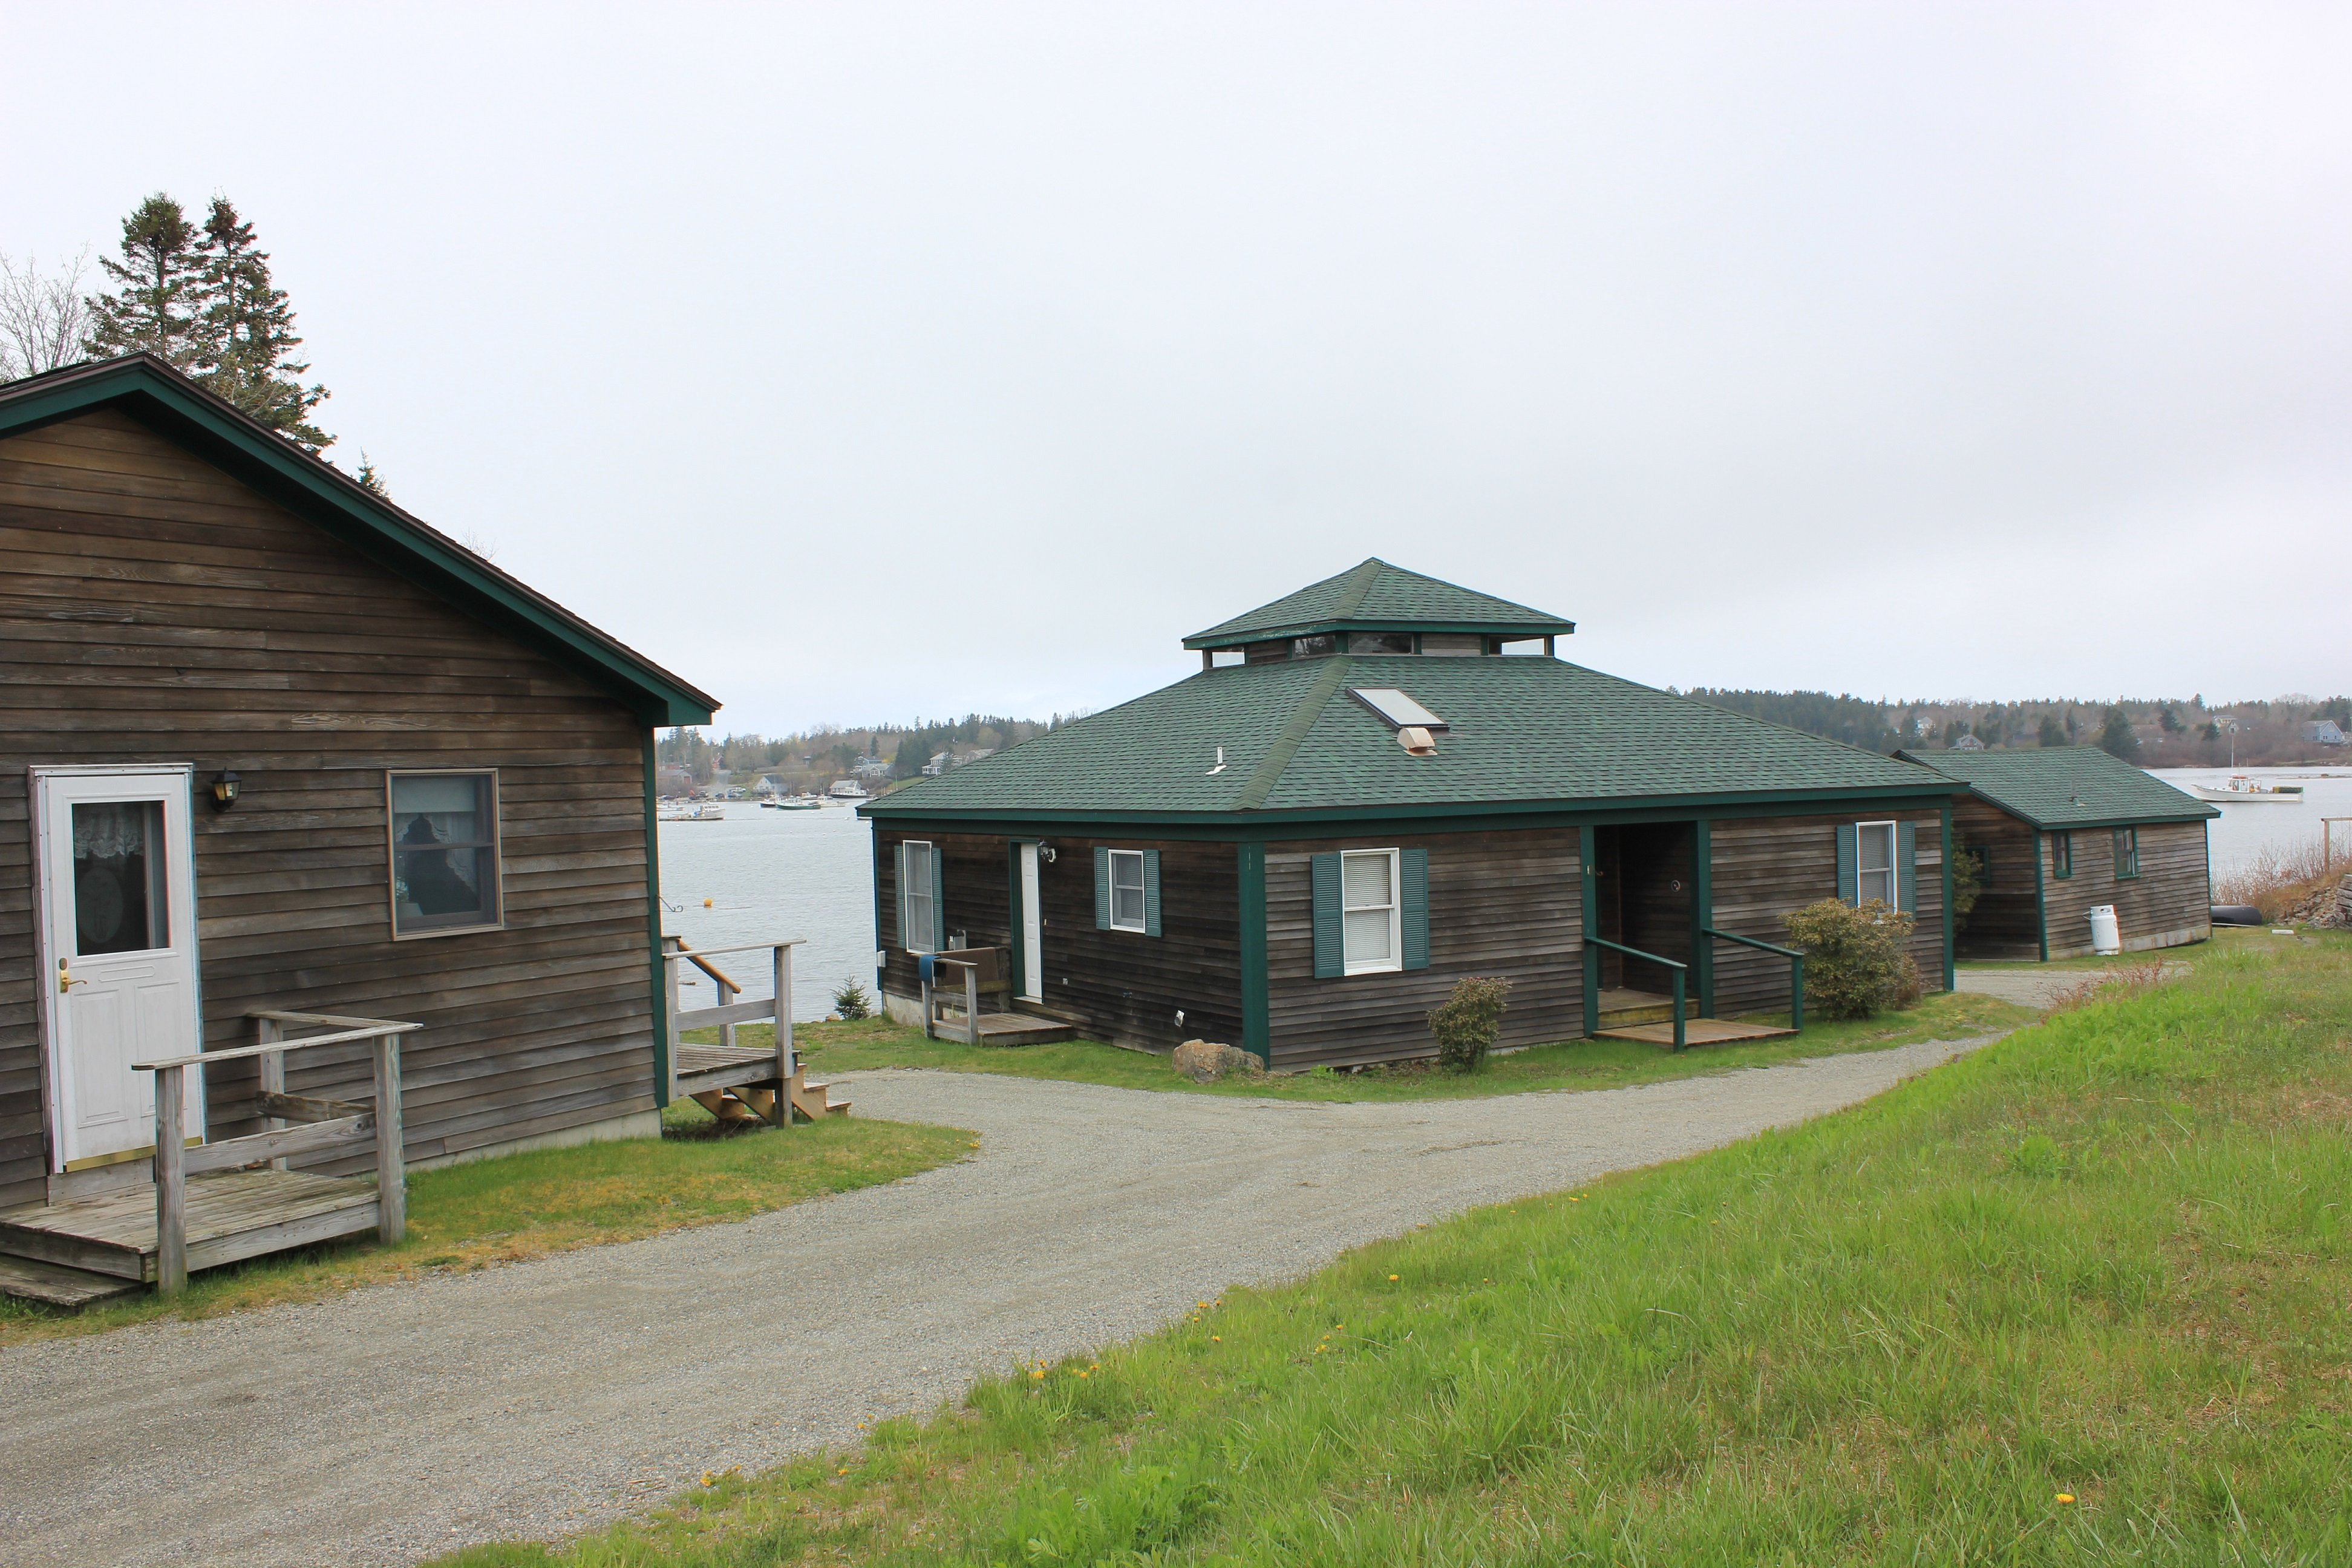 View of the cottages looking towards Bass Harbor